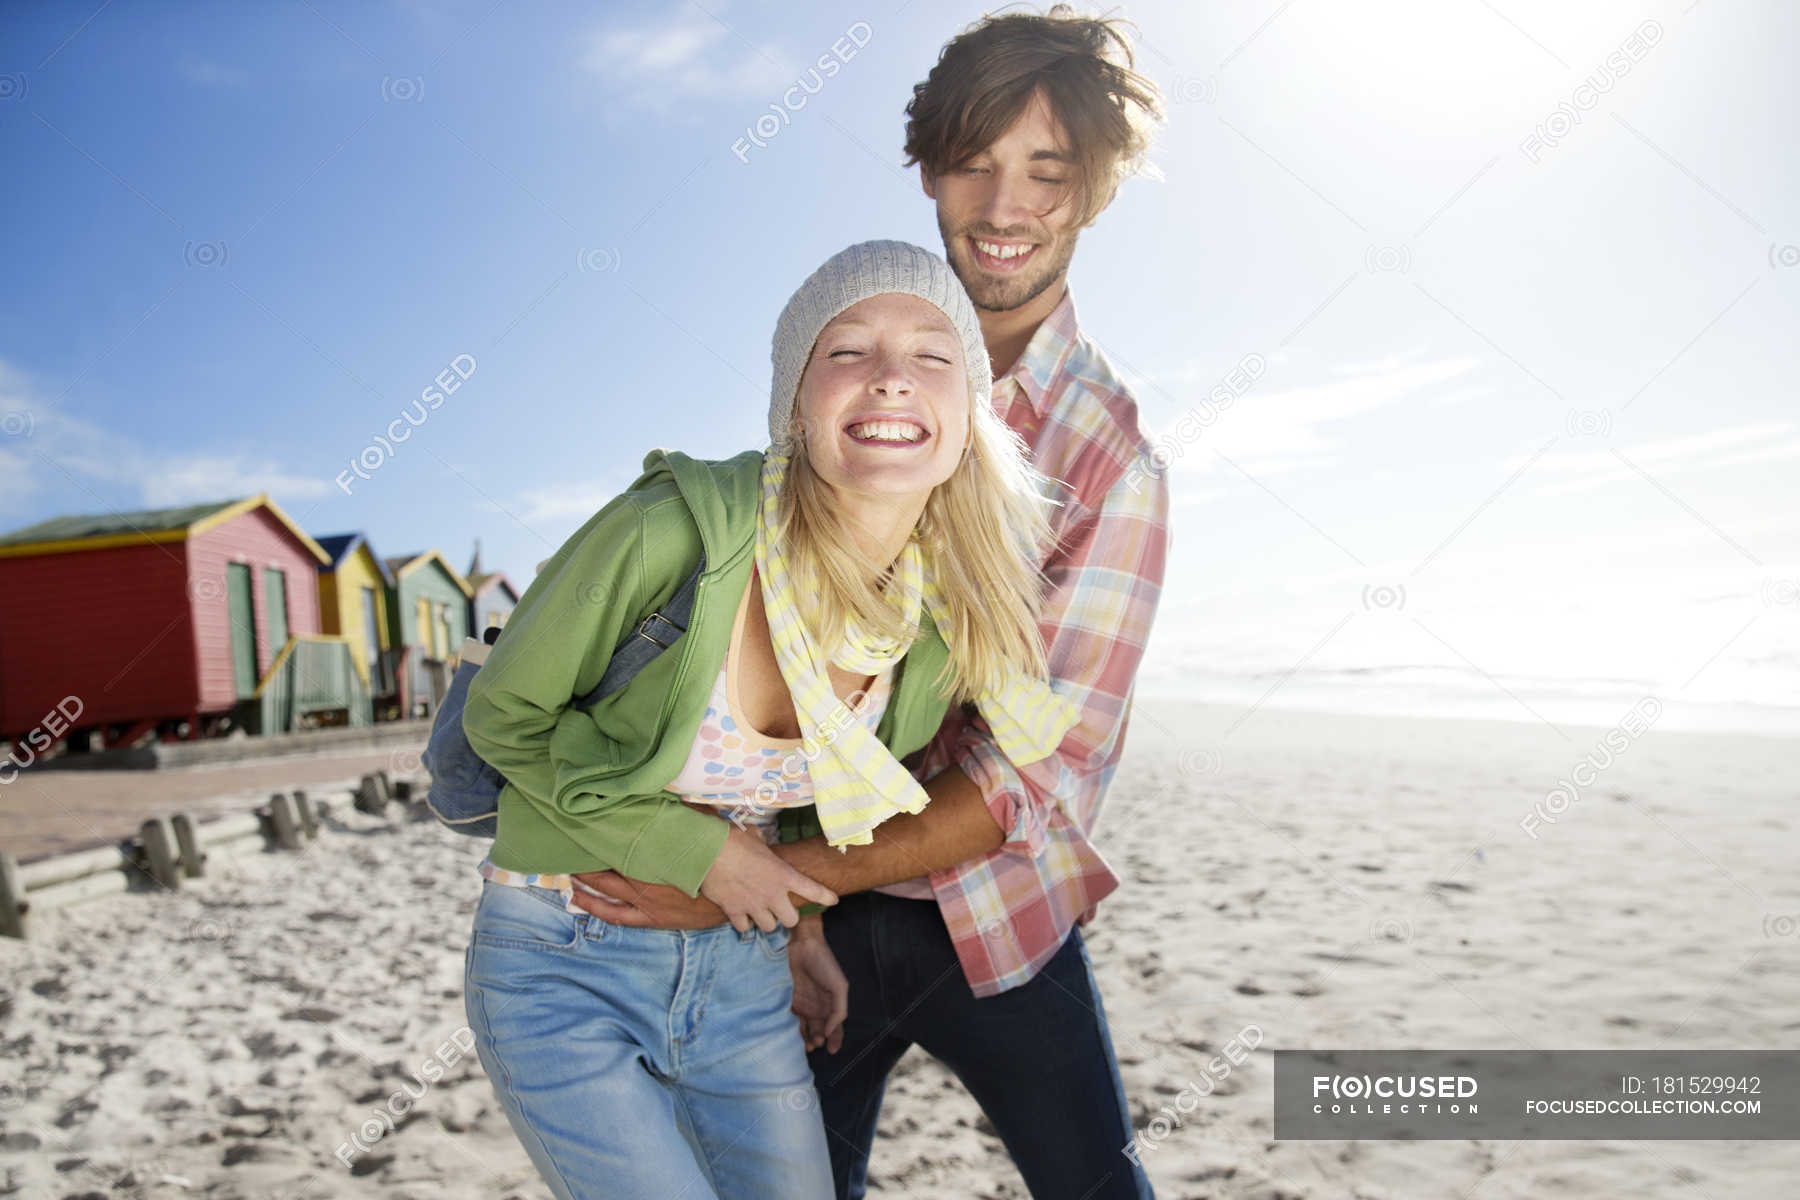 Playful young couple on beach — Stock Photo | #181529942